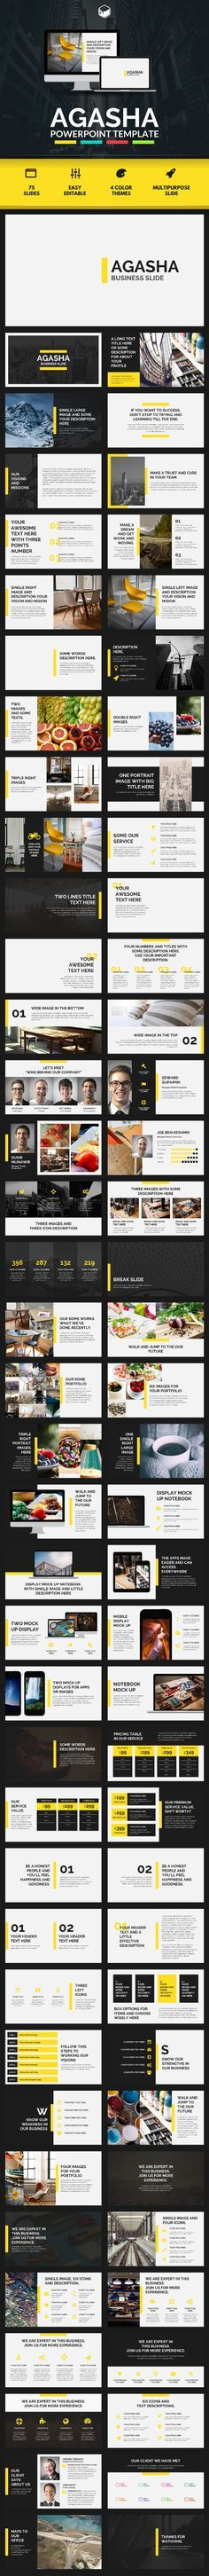 AGASHA - PowerPoint Template (PowerPoint Templates)